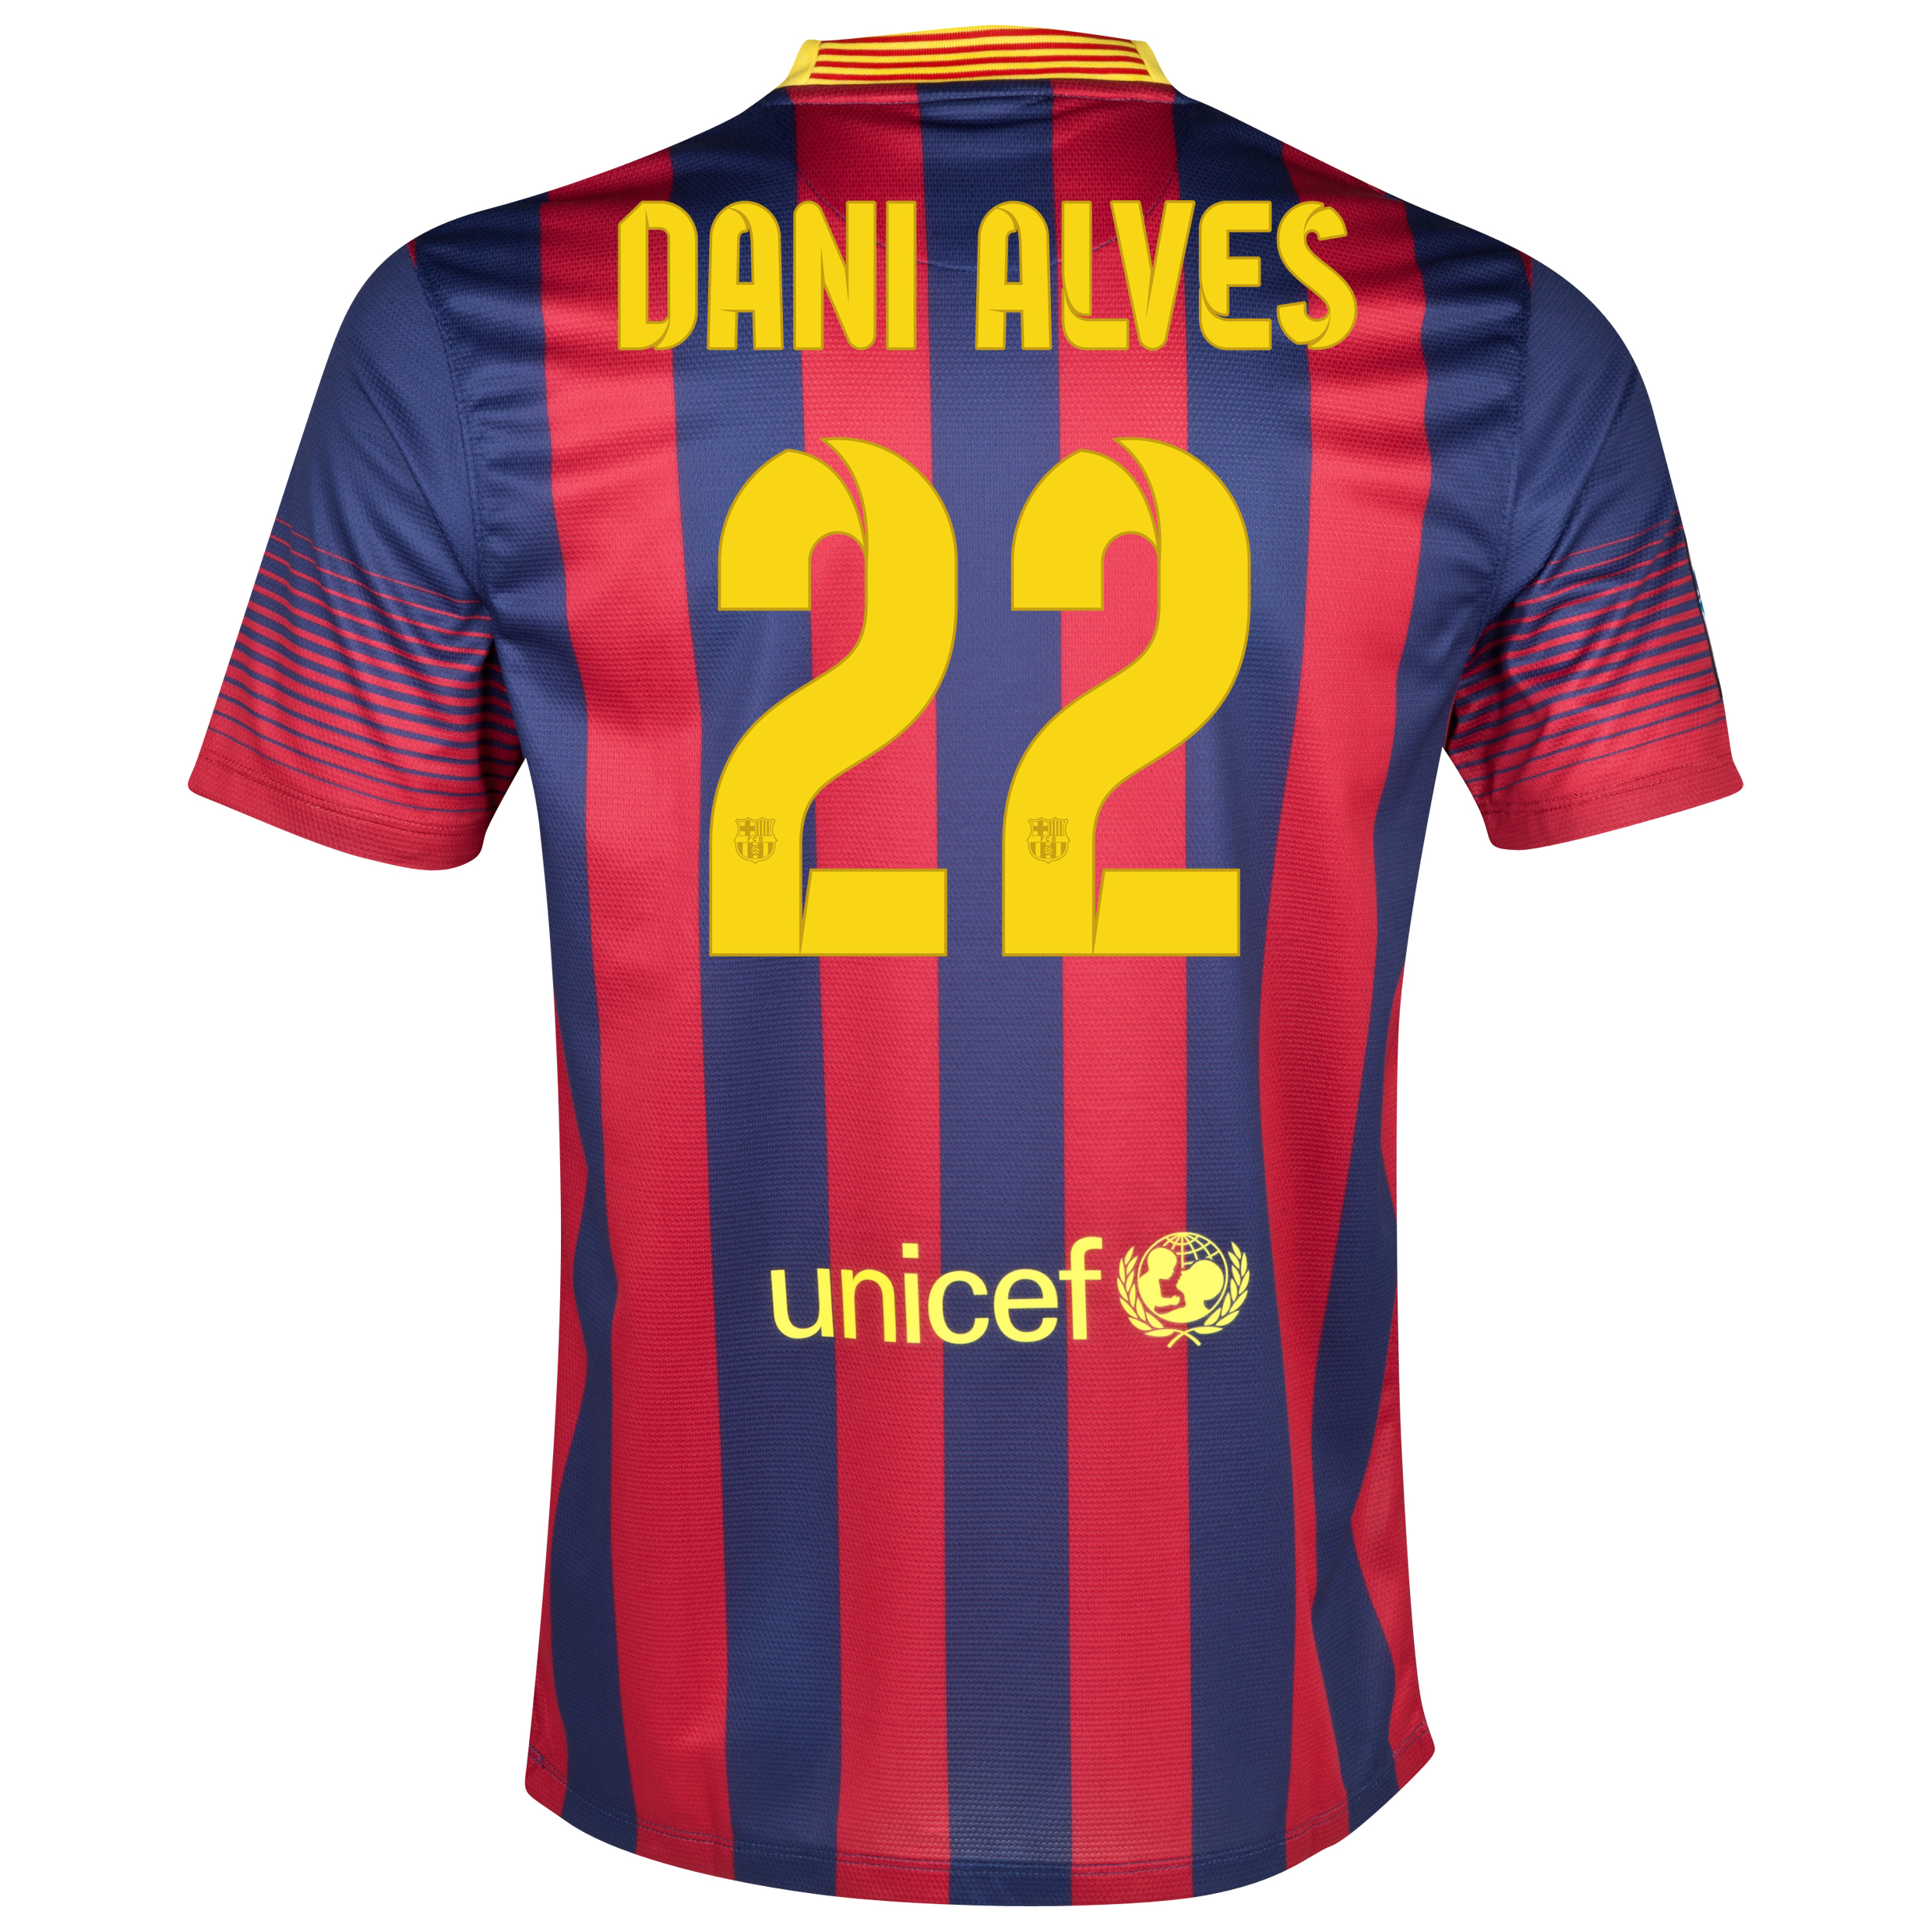 Barcelona Home Shirt 2013/14 with Dani Alves 22 printing